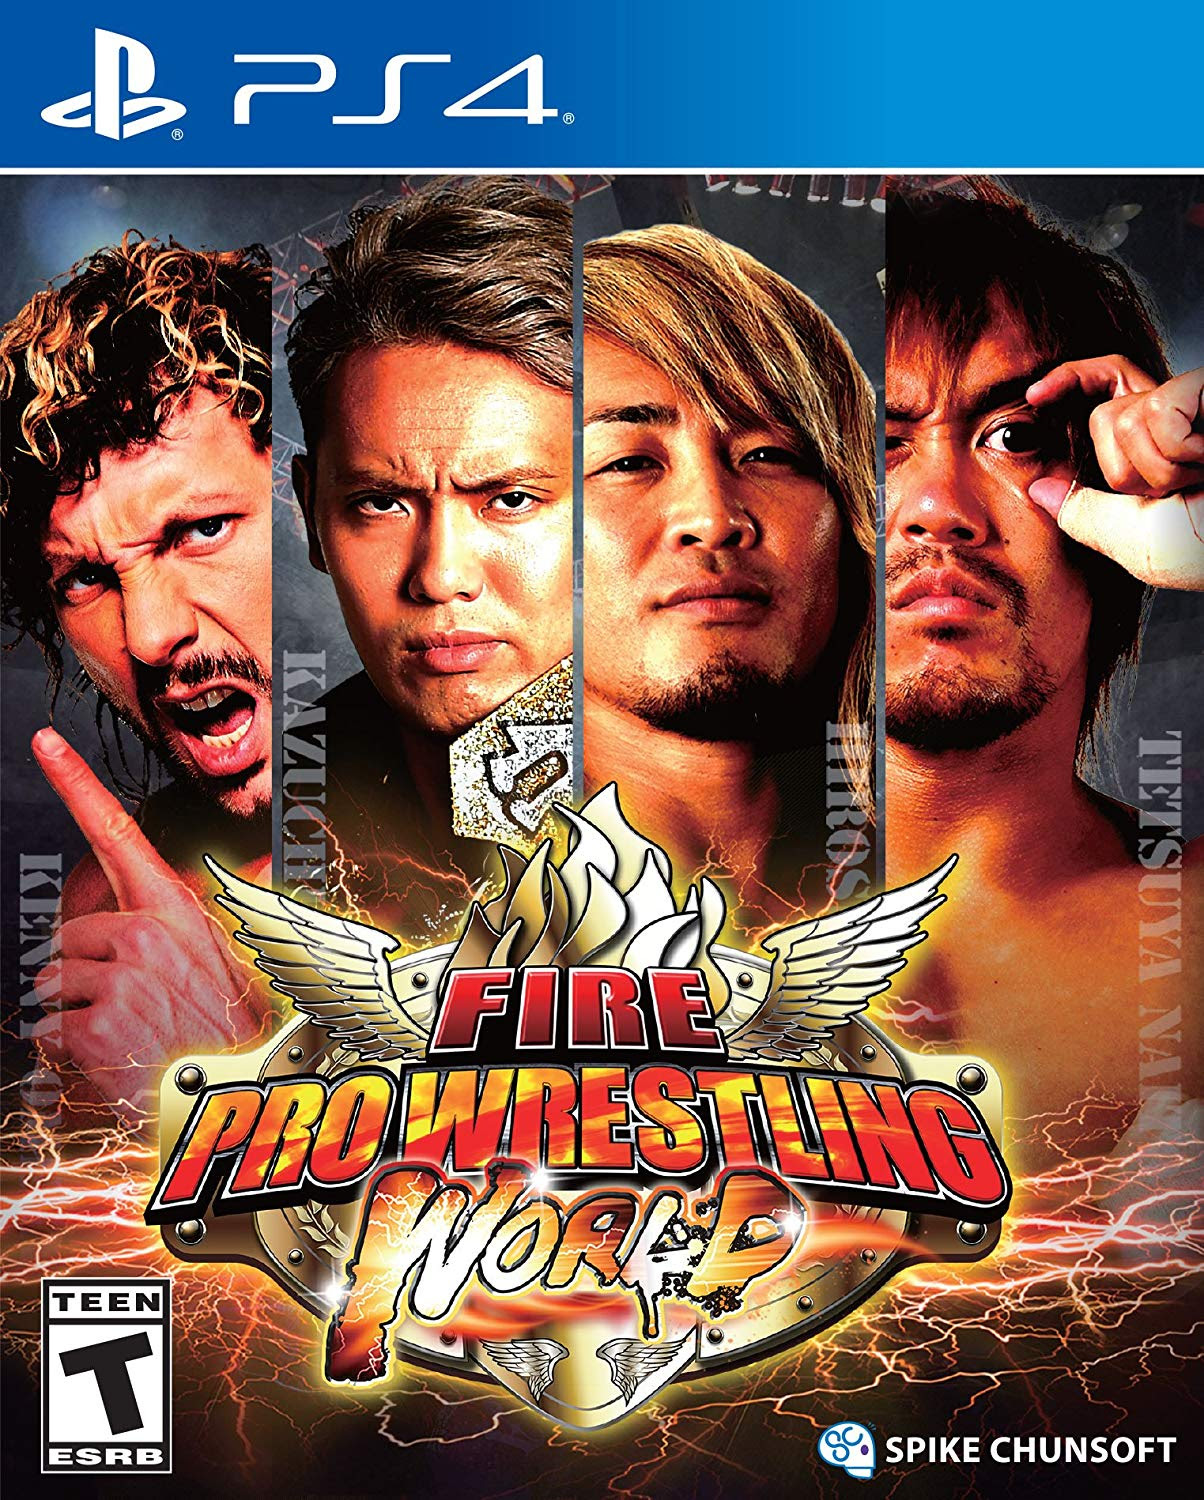 Fire Pro Wrestling World PS4 Cover Official.jpg